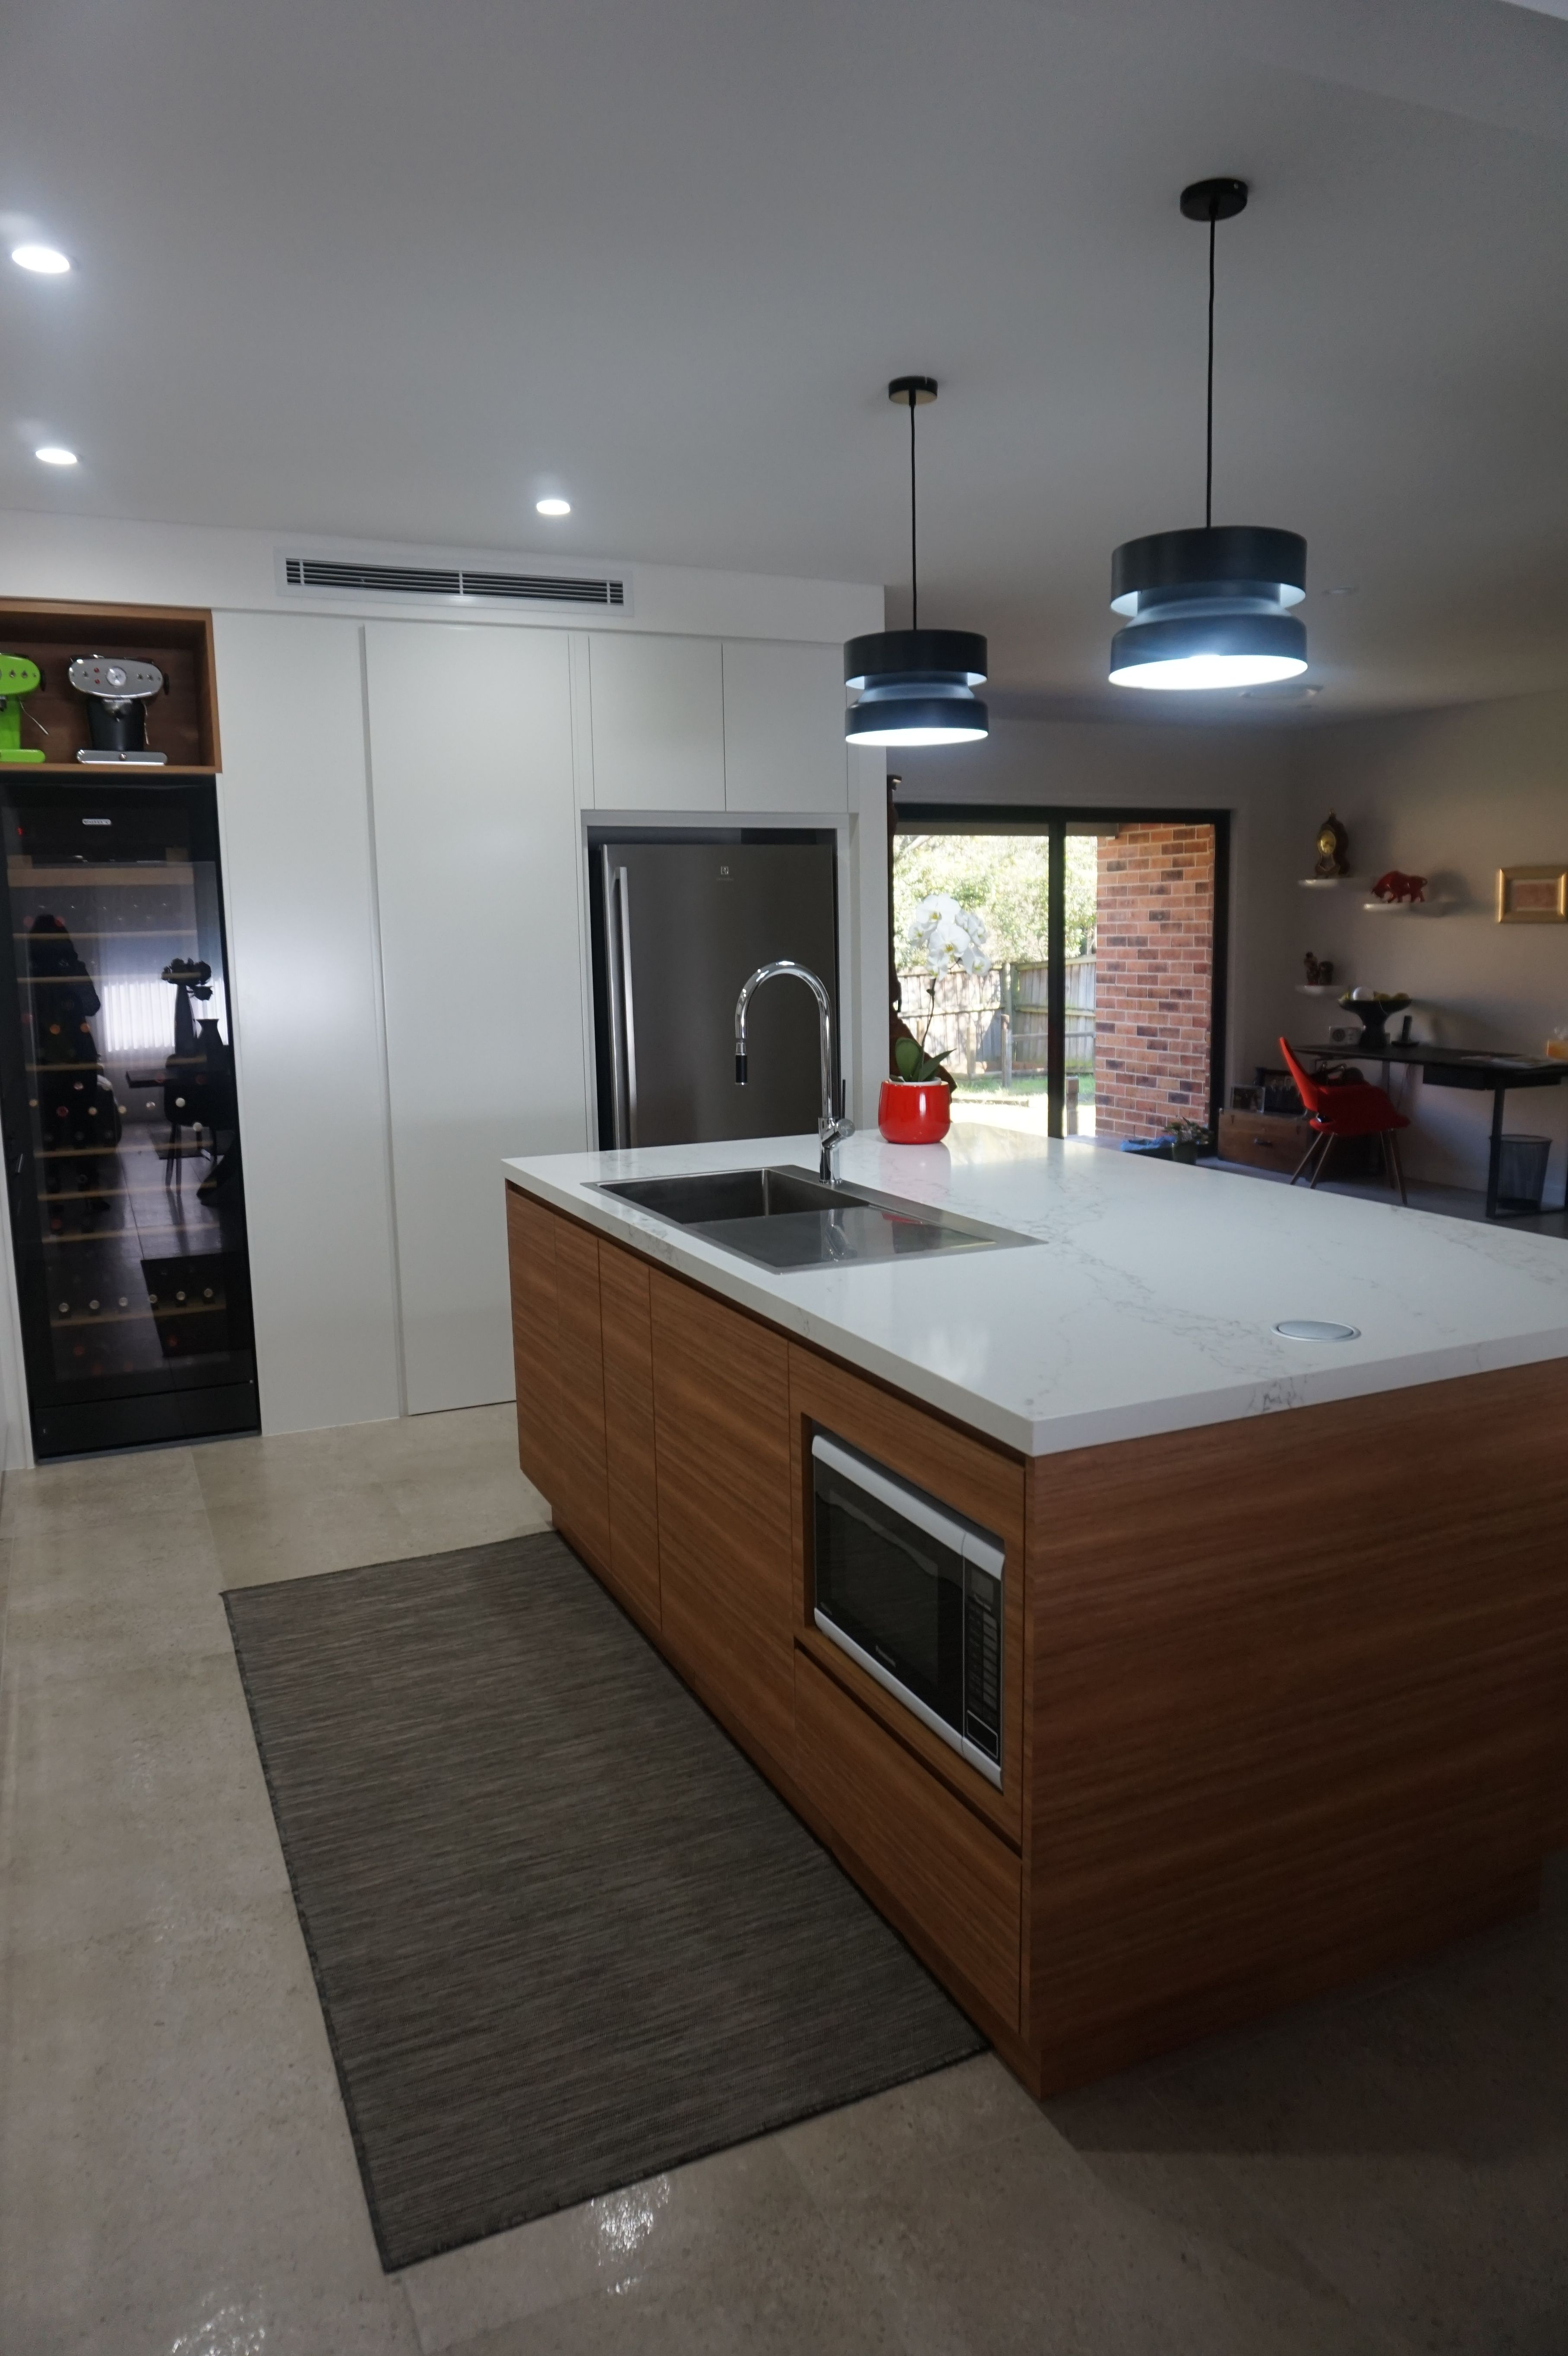 Two Tone Kitchen Built In Under Bench Microwave Integrated Sink Walk In Pantry Wine Fridge Kitchen Remodel Walk In Pantry New Kitchen